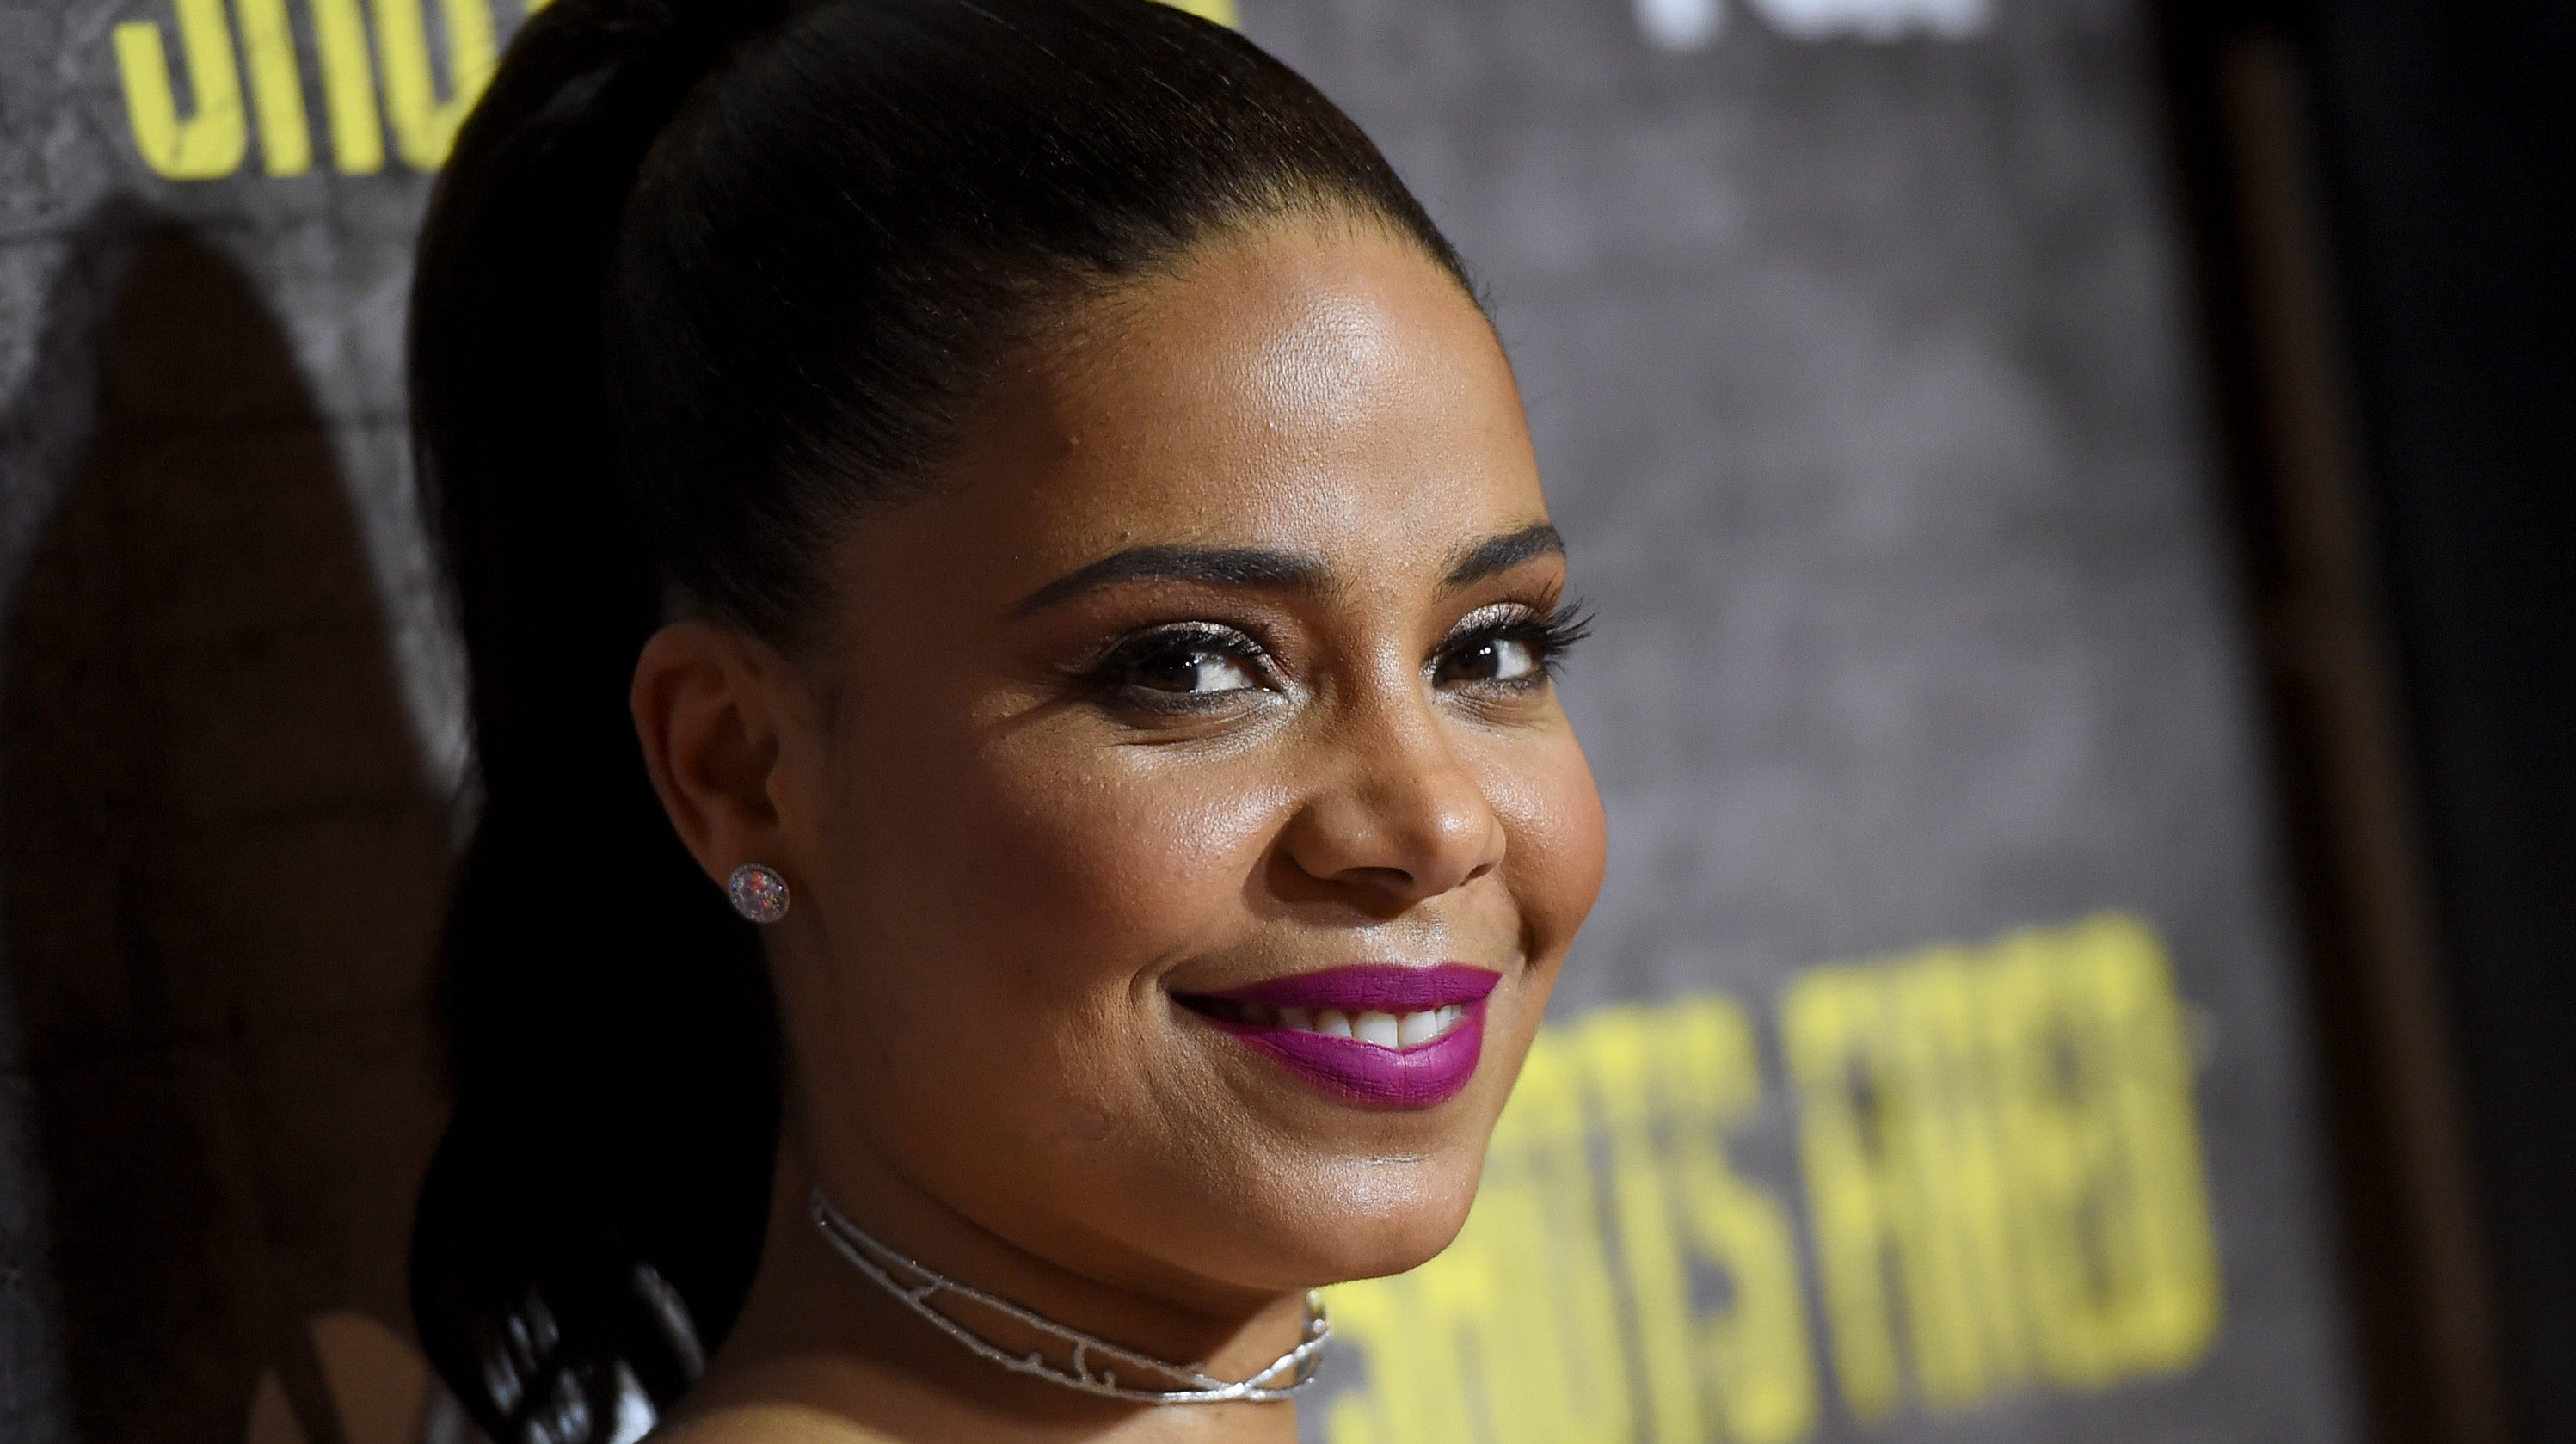 DC Universe's Harley Quinn Series Reportedly Adds Sanaa Lathan As The New Voice Of Catwoman